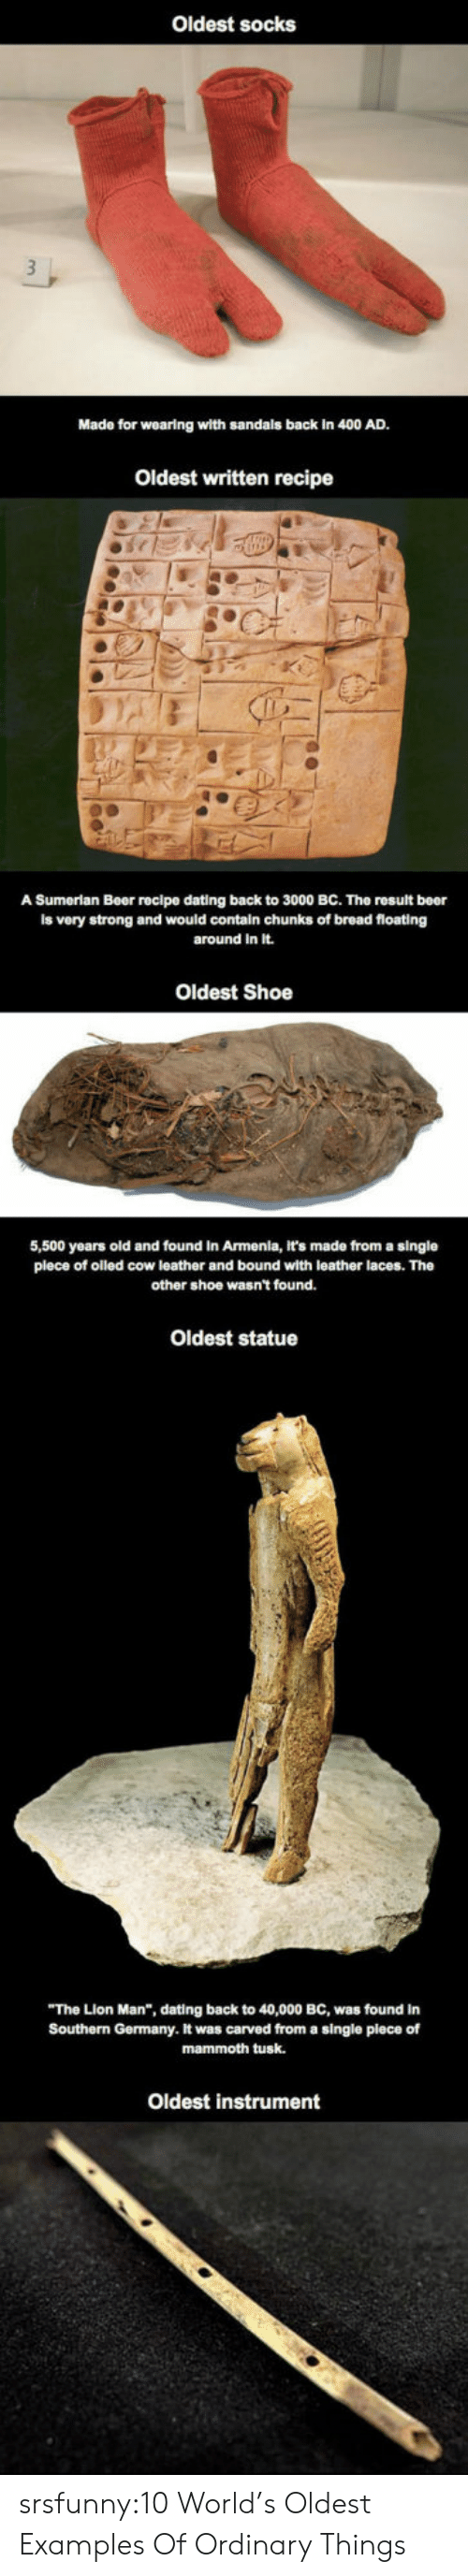 """Armenia: Oldest socks  Made for wearing wlth sandals back in 400 AD.  Oldest written recipe  A Sumerian Beer recipe dating back to 3000 BC. The rosult beer  is very strong and would contain chunks of bread floating  around in It.  Oldest Shoe  5,500 years old and found in Armenia, It's made from a single  plece of olled cow leather and bound with leather laces. The  other shoe wasn't found.  Oldest statue  The Lion Man"""", dating back to 40,000 BC, was found in  Southern Germany. It was carved from a single plece of  mammoth tusk.  Oldest instrument srsfunny:10 World's Oldest Examples Of Ordinary Things"""